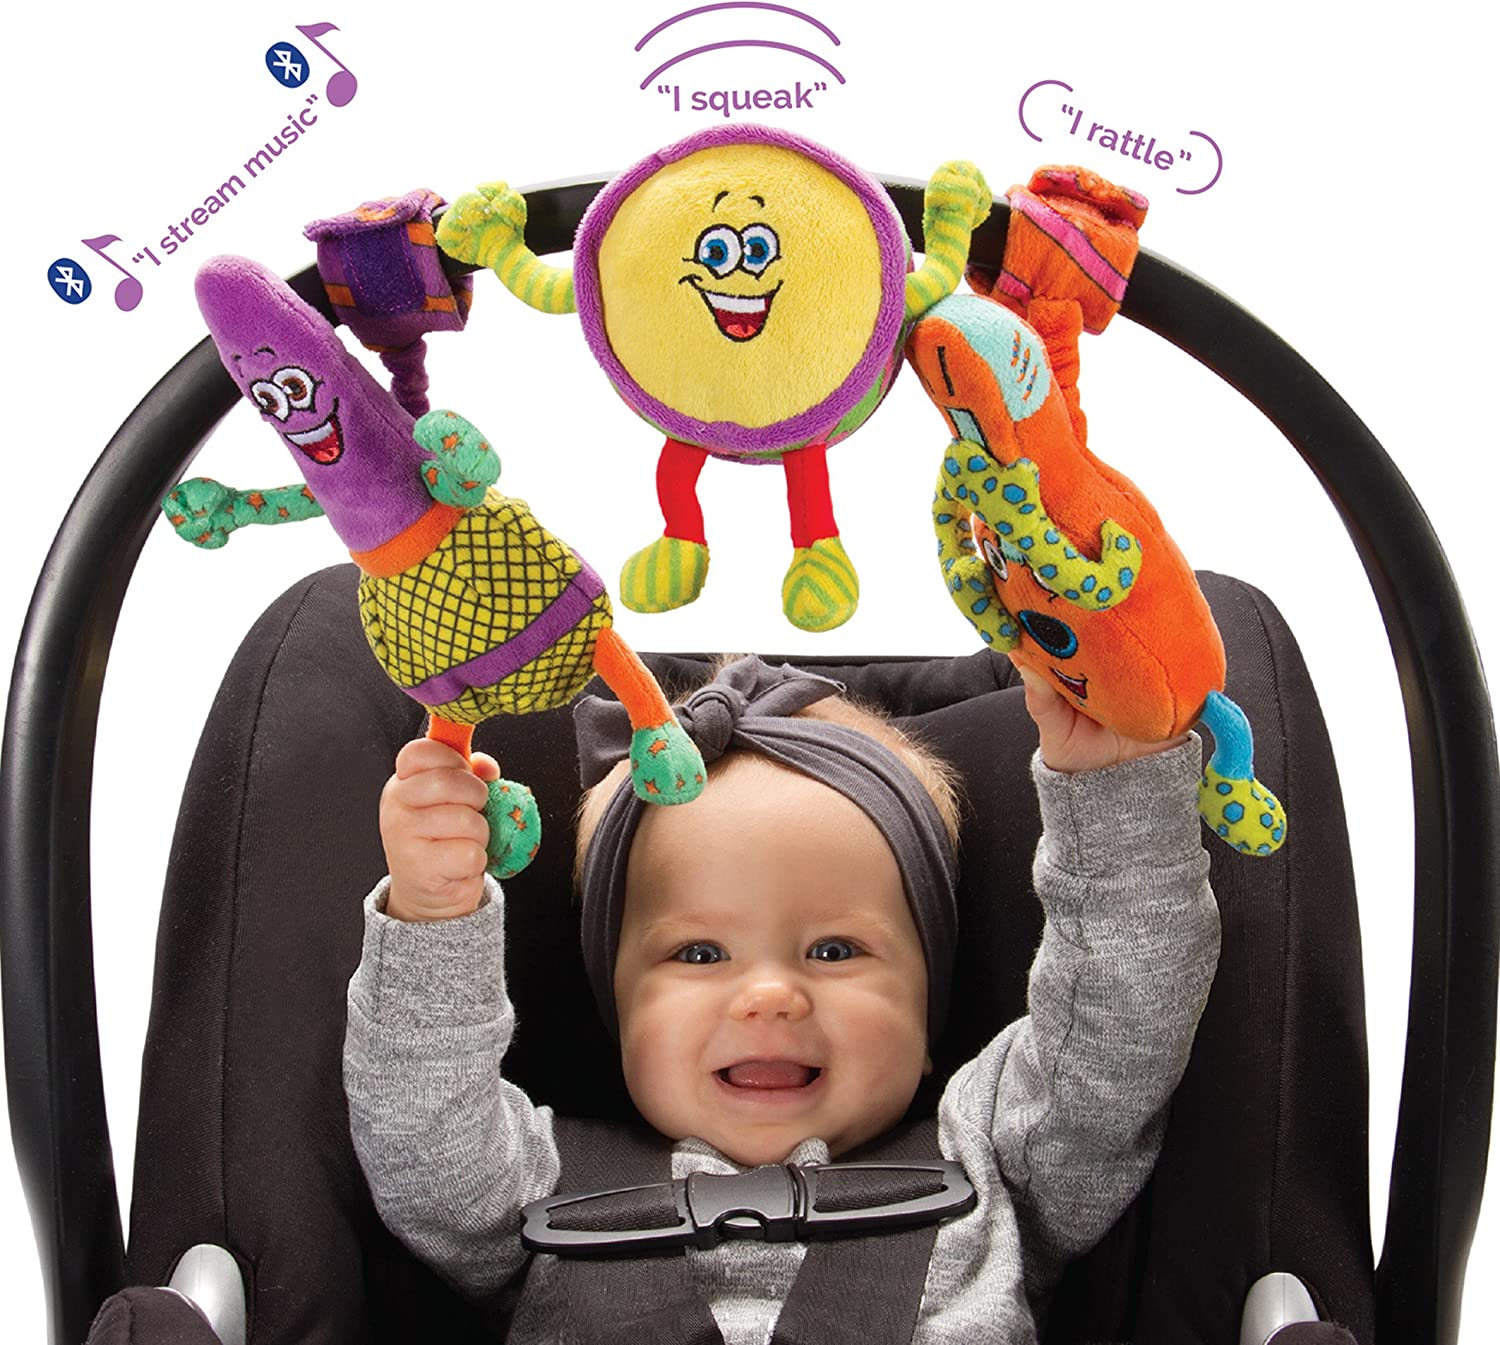 Amazon Com Lil Jammerz Baby Music Toys For Car Seat Or Stroller Includes A Bluetooth Speaker Downloadable App That Streams Music Or White Noise And Plush Rattle Squeaky Toy Toys Games